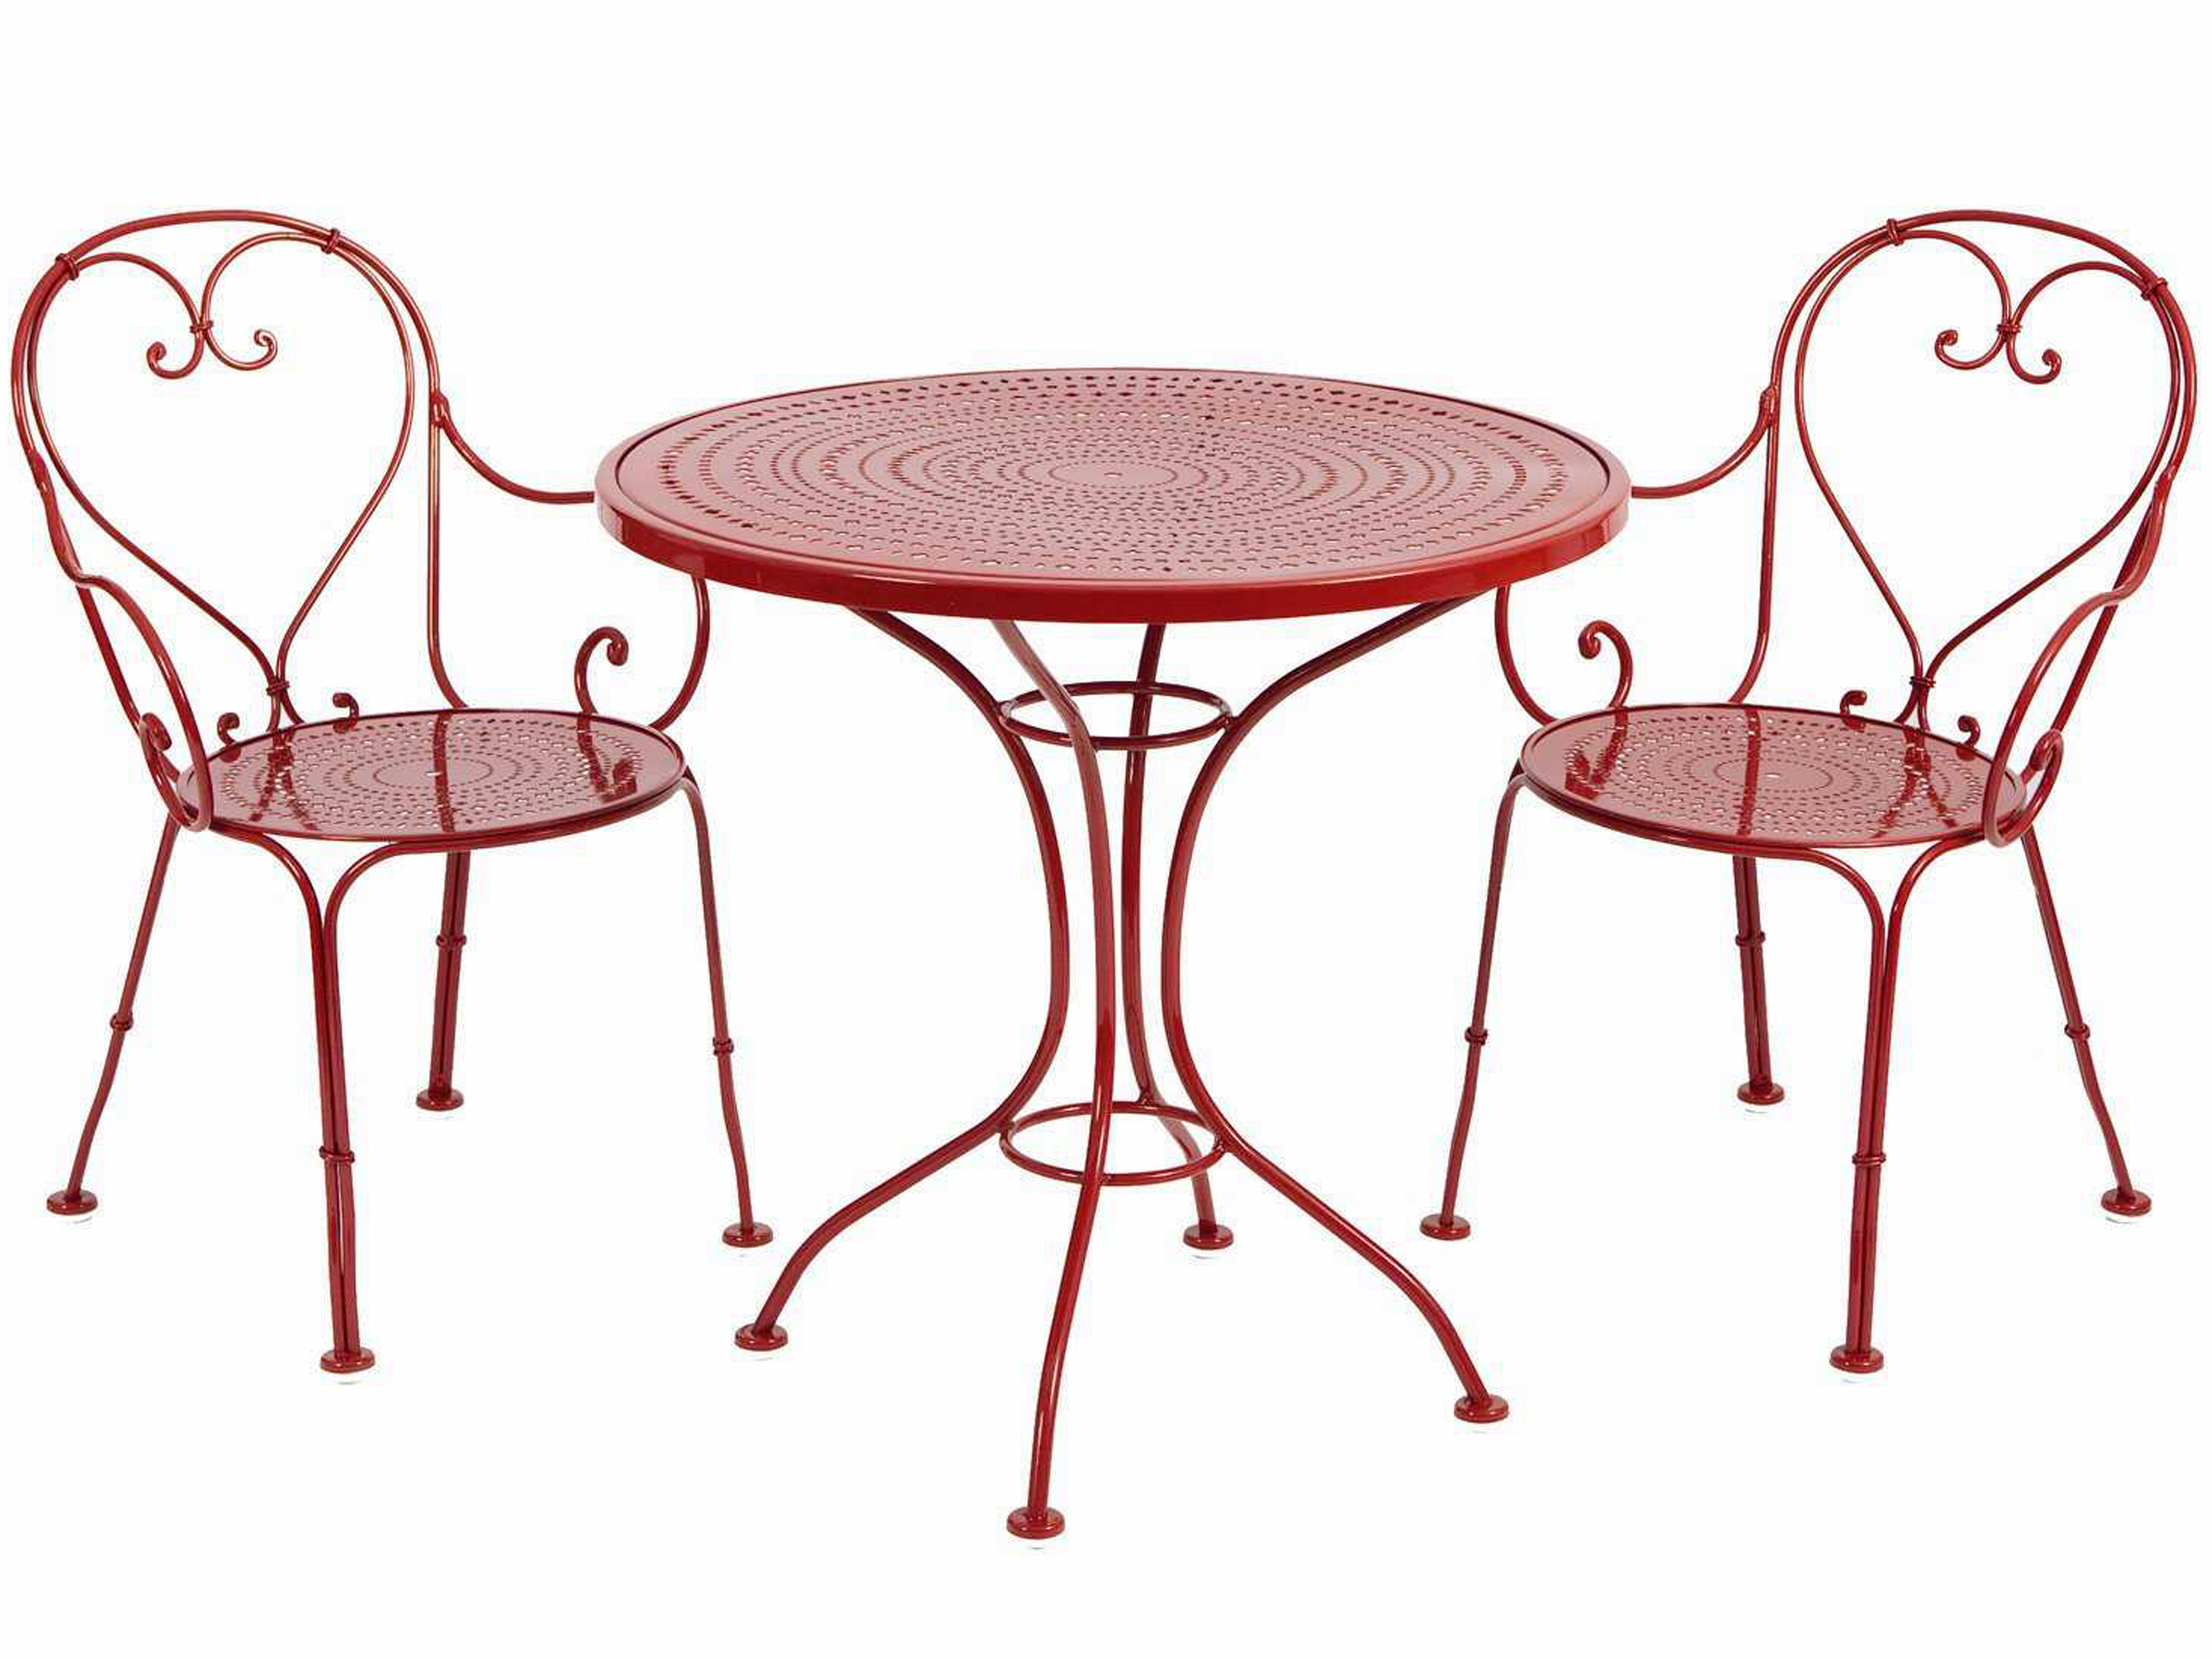 Woodard parisienne wrought iron bistro dining set wrpards